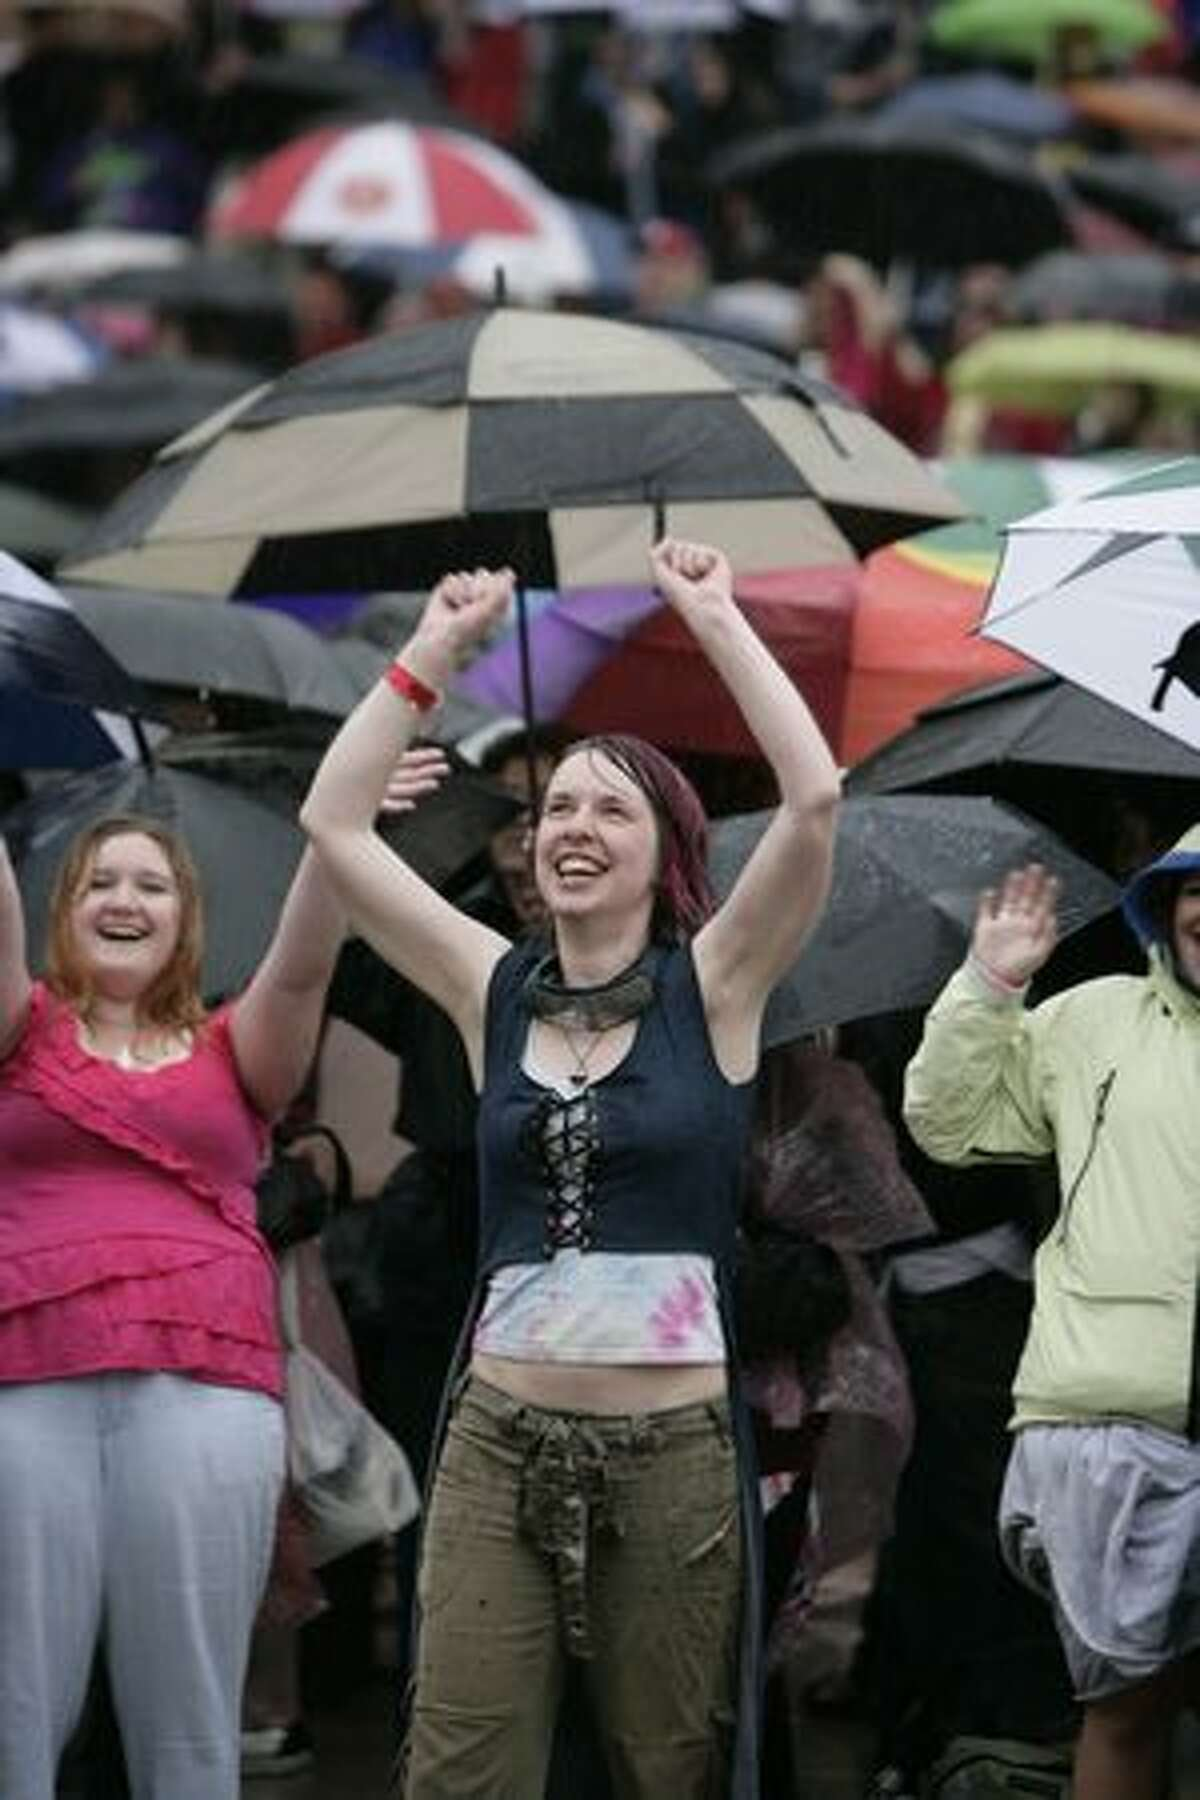 Boston auditioners arrive for their chance to become the next American Idol.